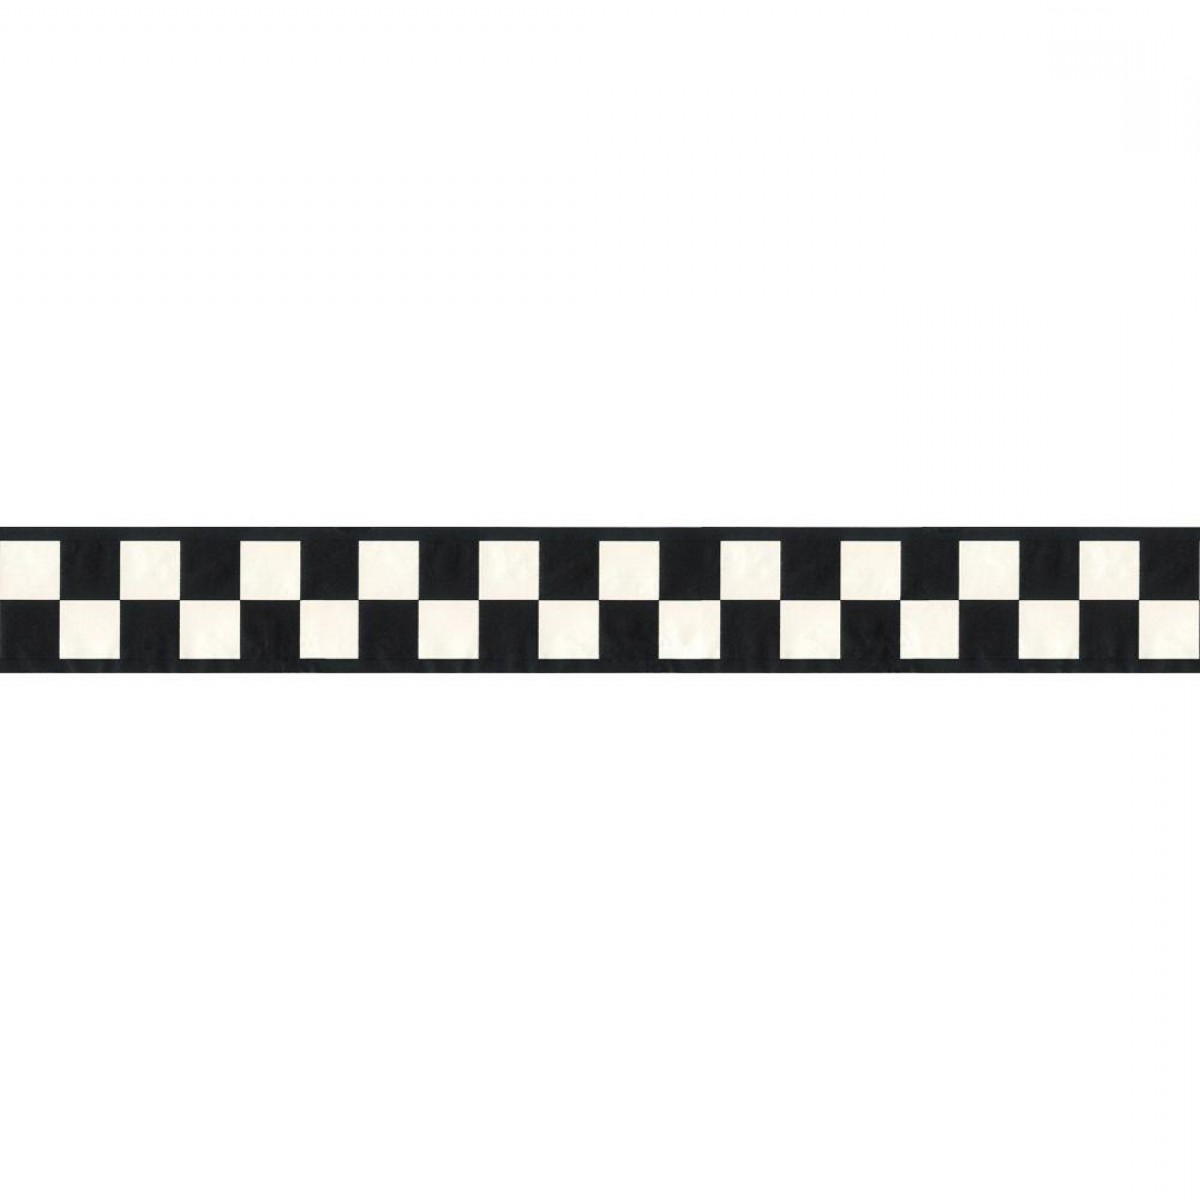 Best Black And White Checkered Border Clip Art Image.